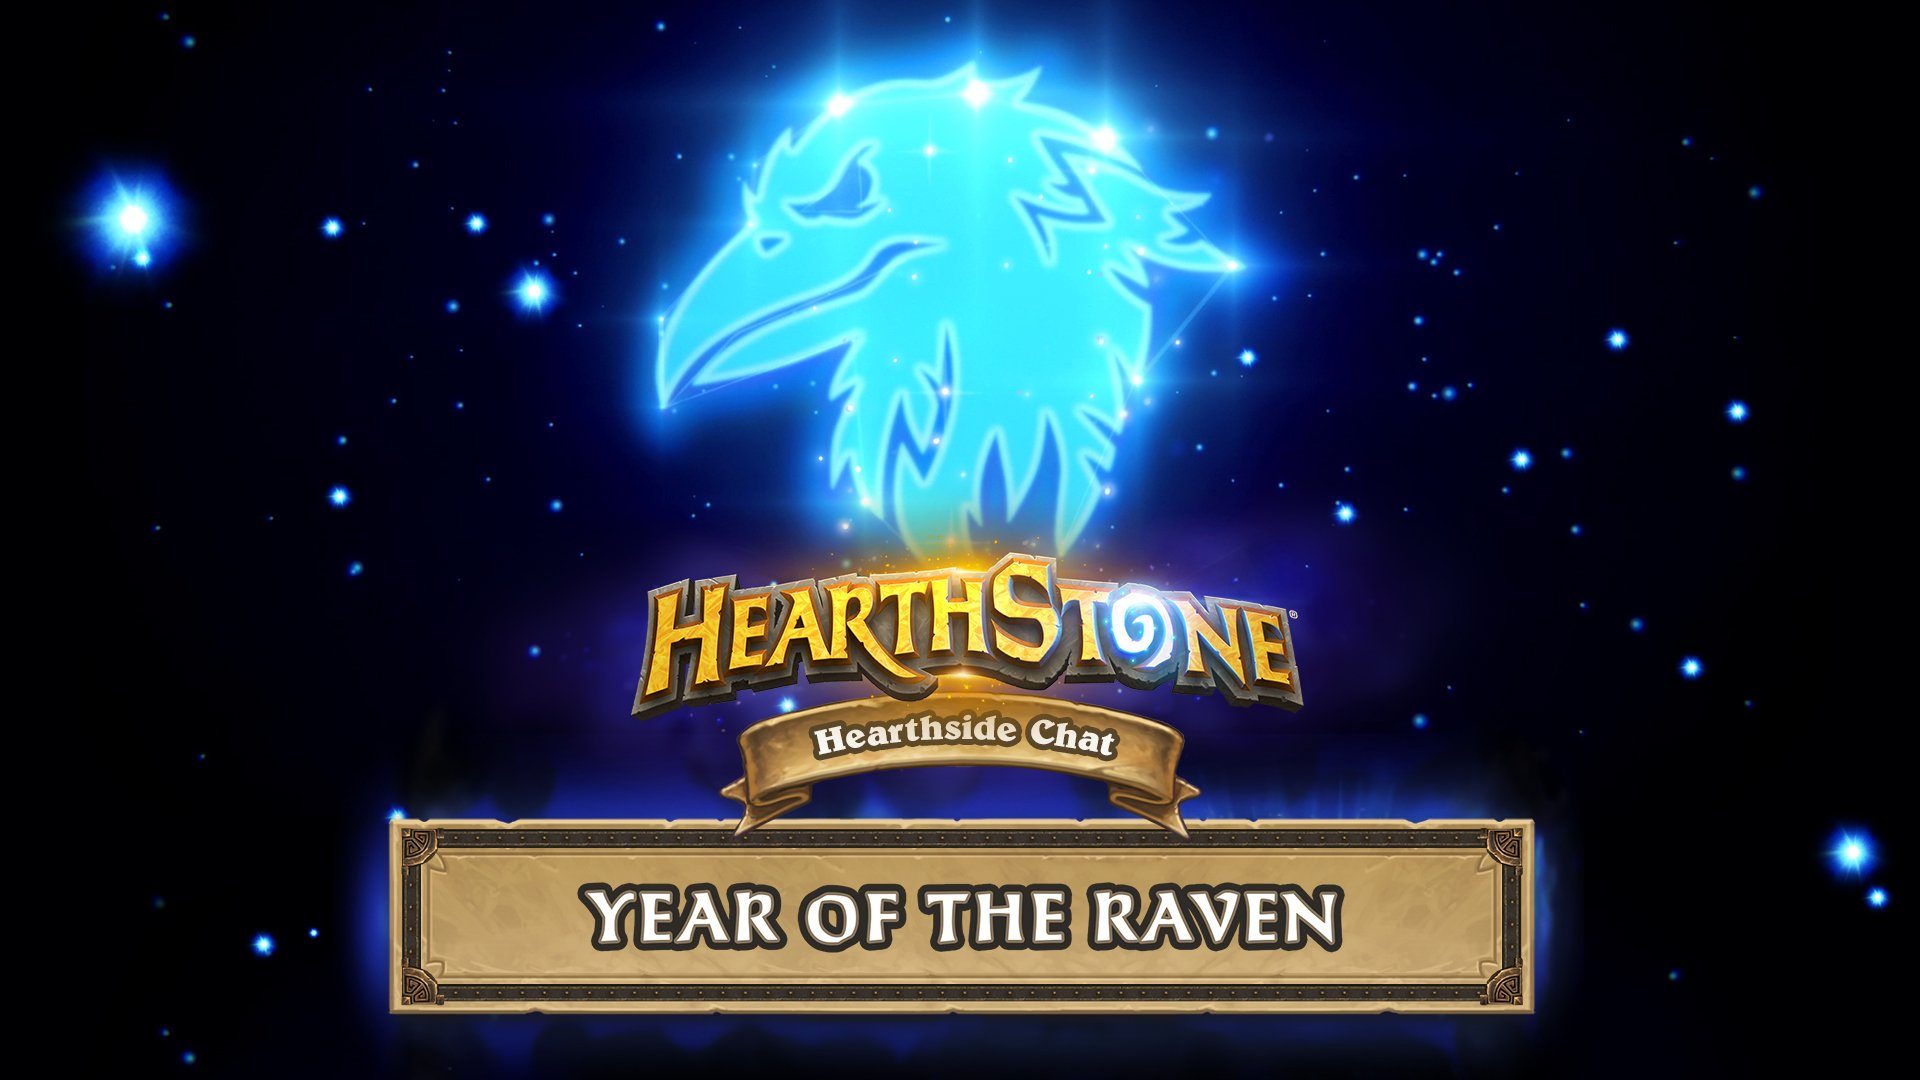 Hearthstone: Prepare yourself for the Year of the Raven and a brand new Druid hero